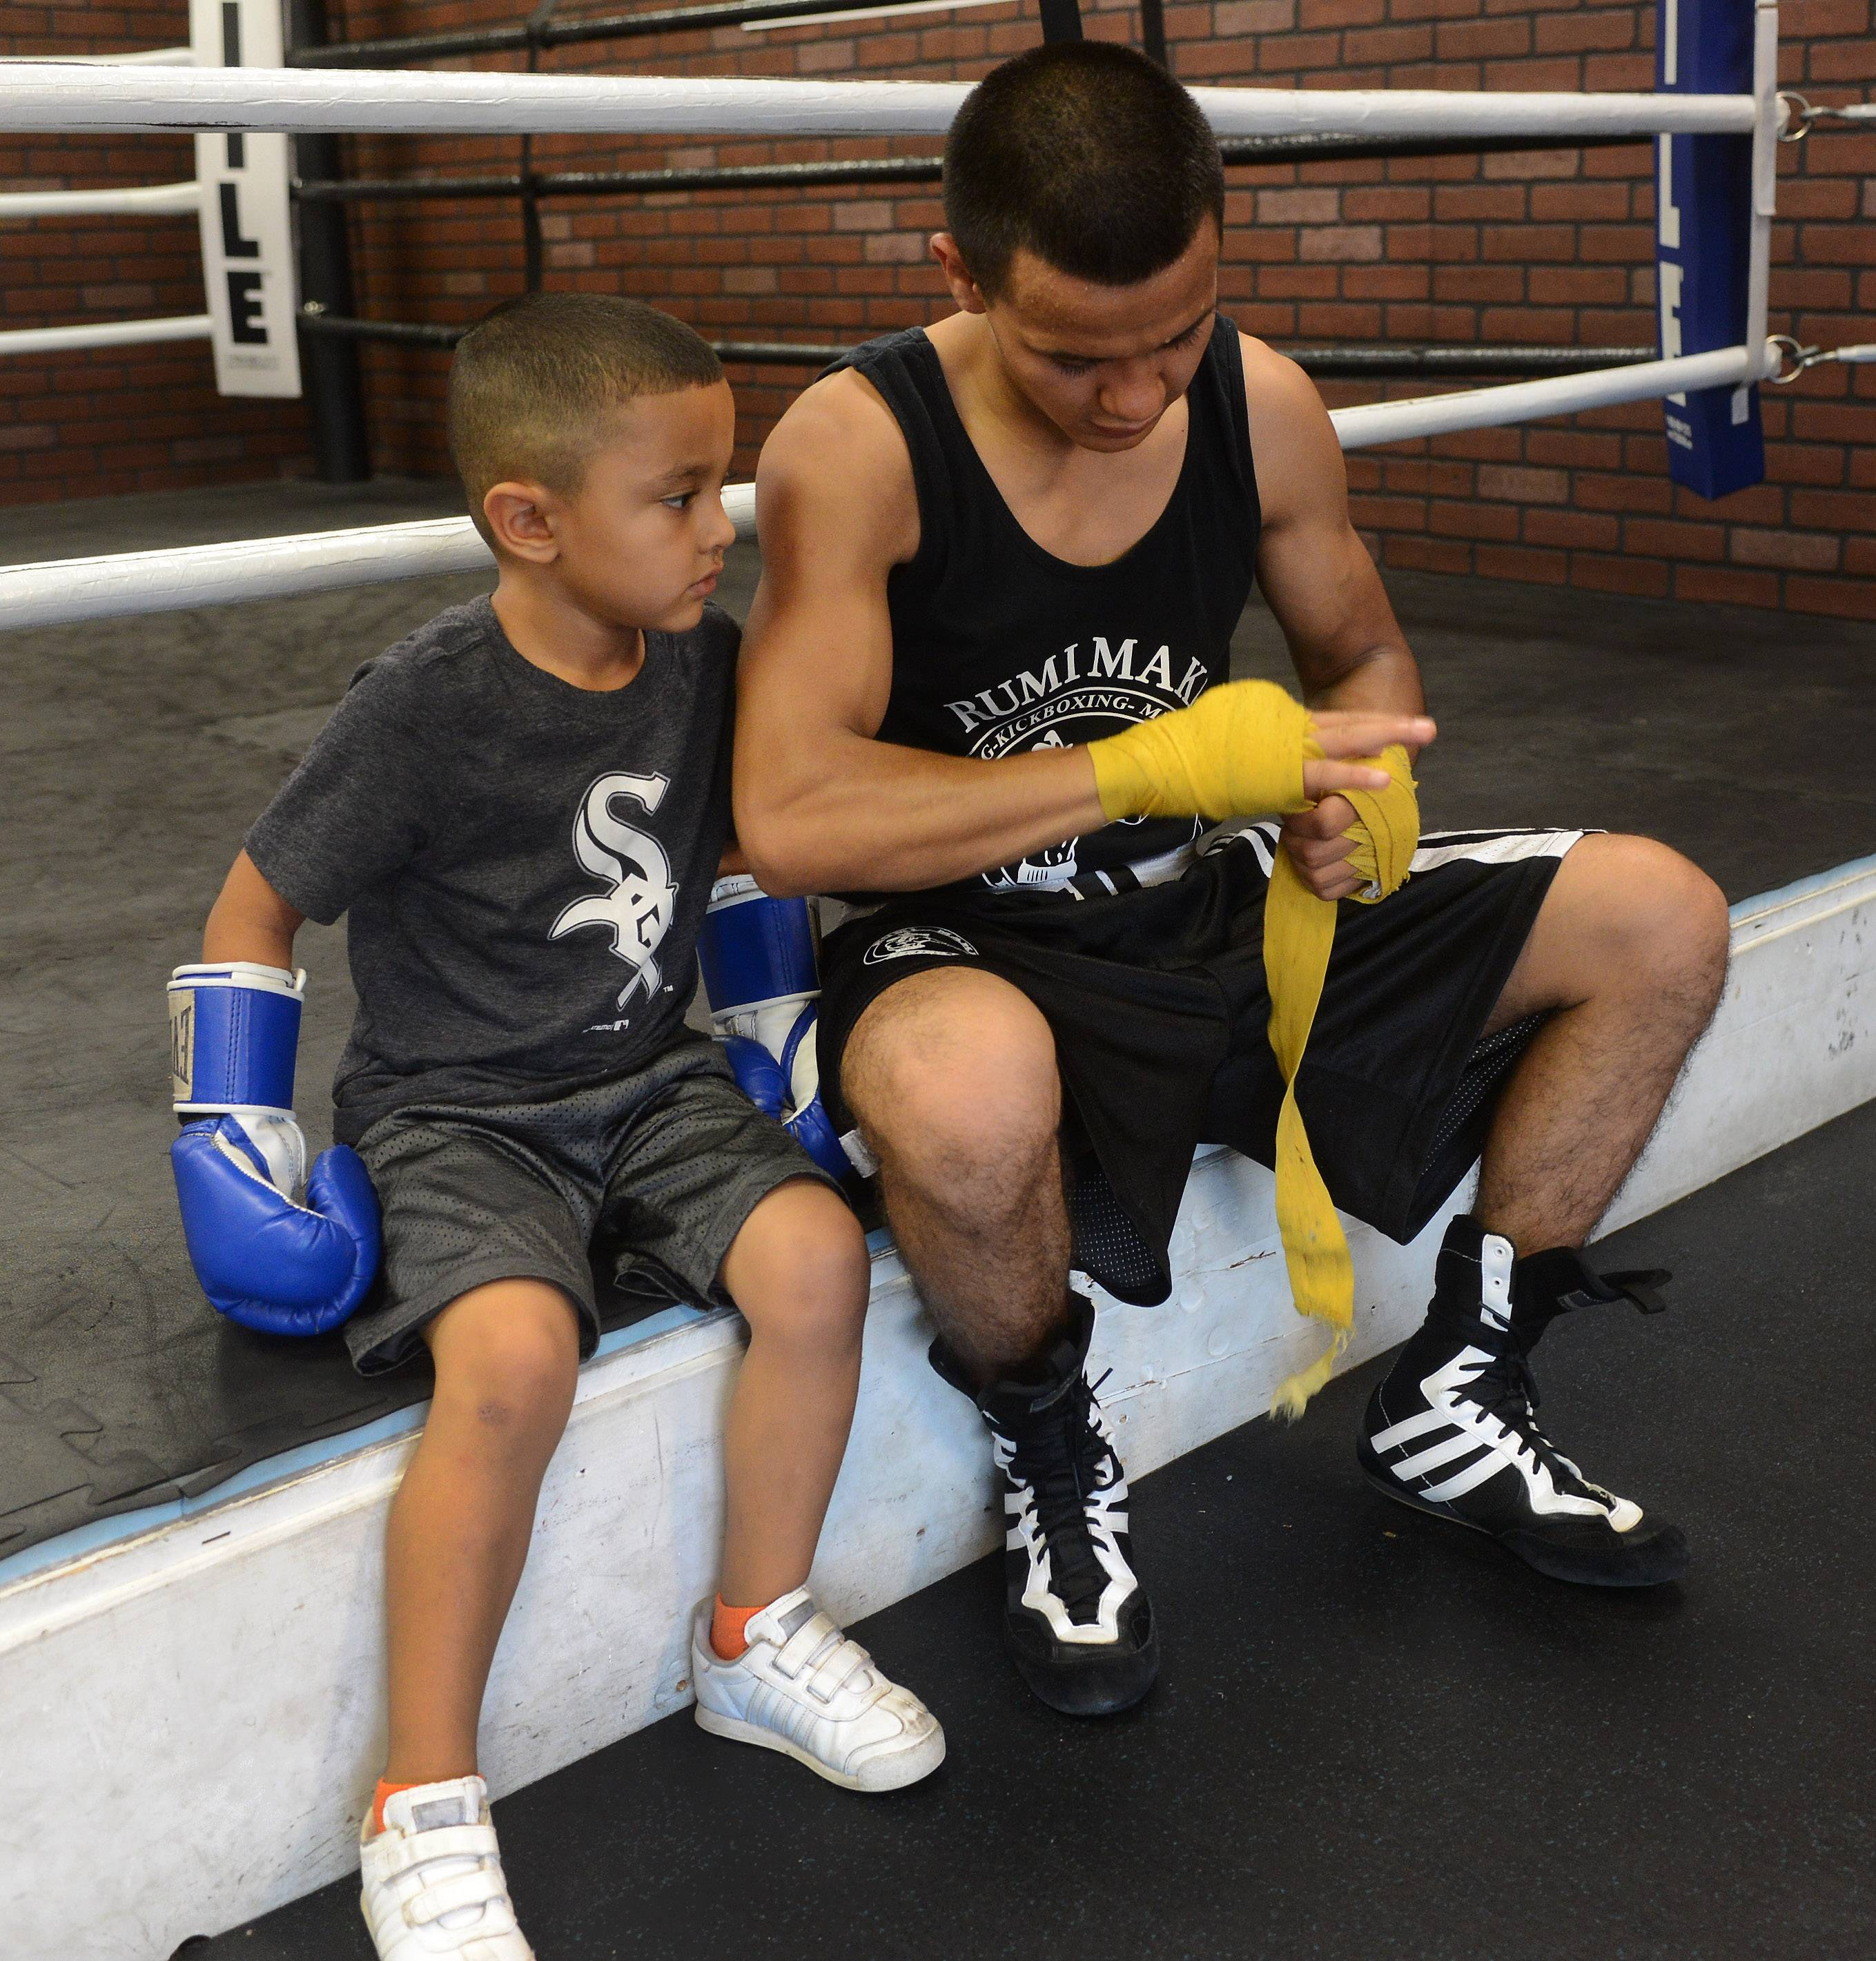 Javier Rivera, 19, of Palatine wraps his hands before a boxing workout as his nephew, Jose Angel Rivera, 4, watches.